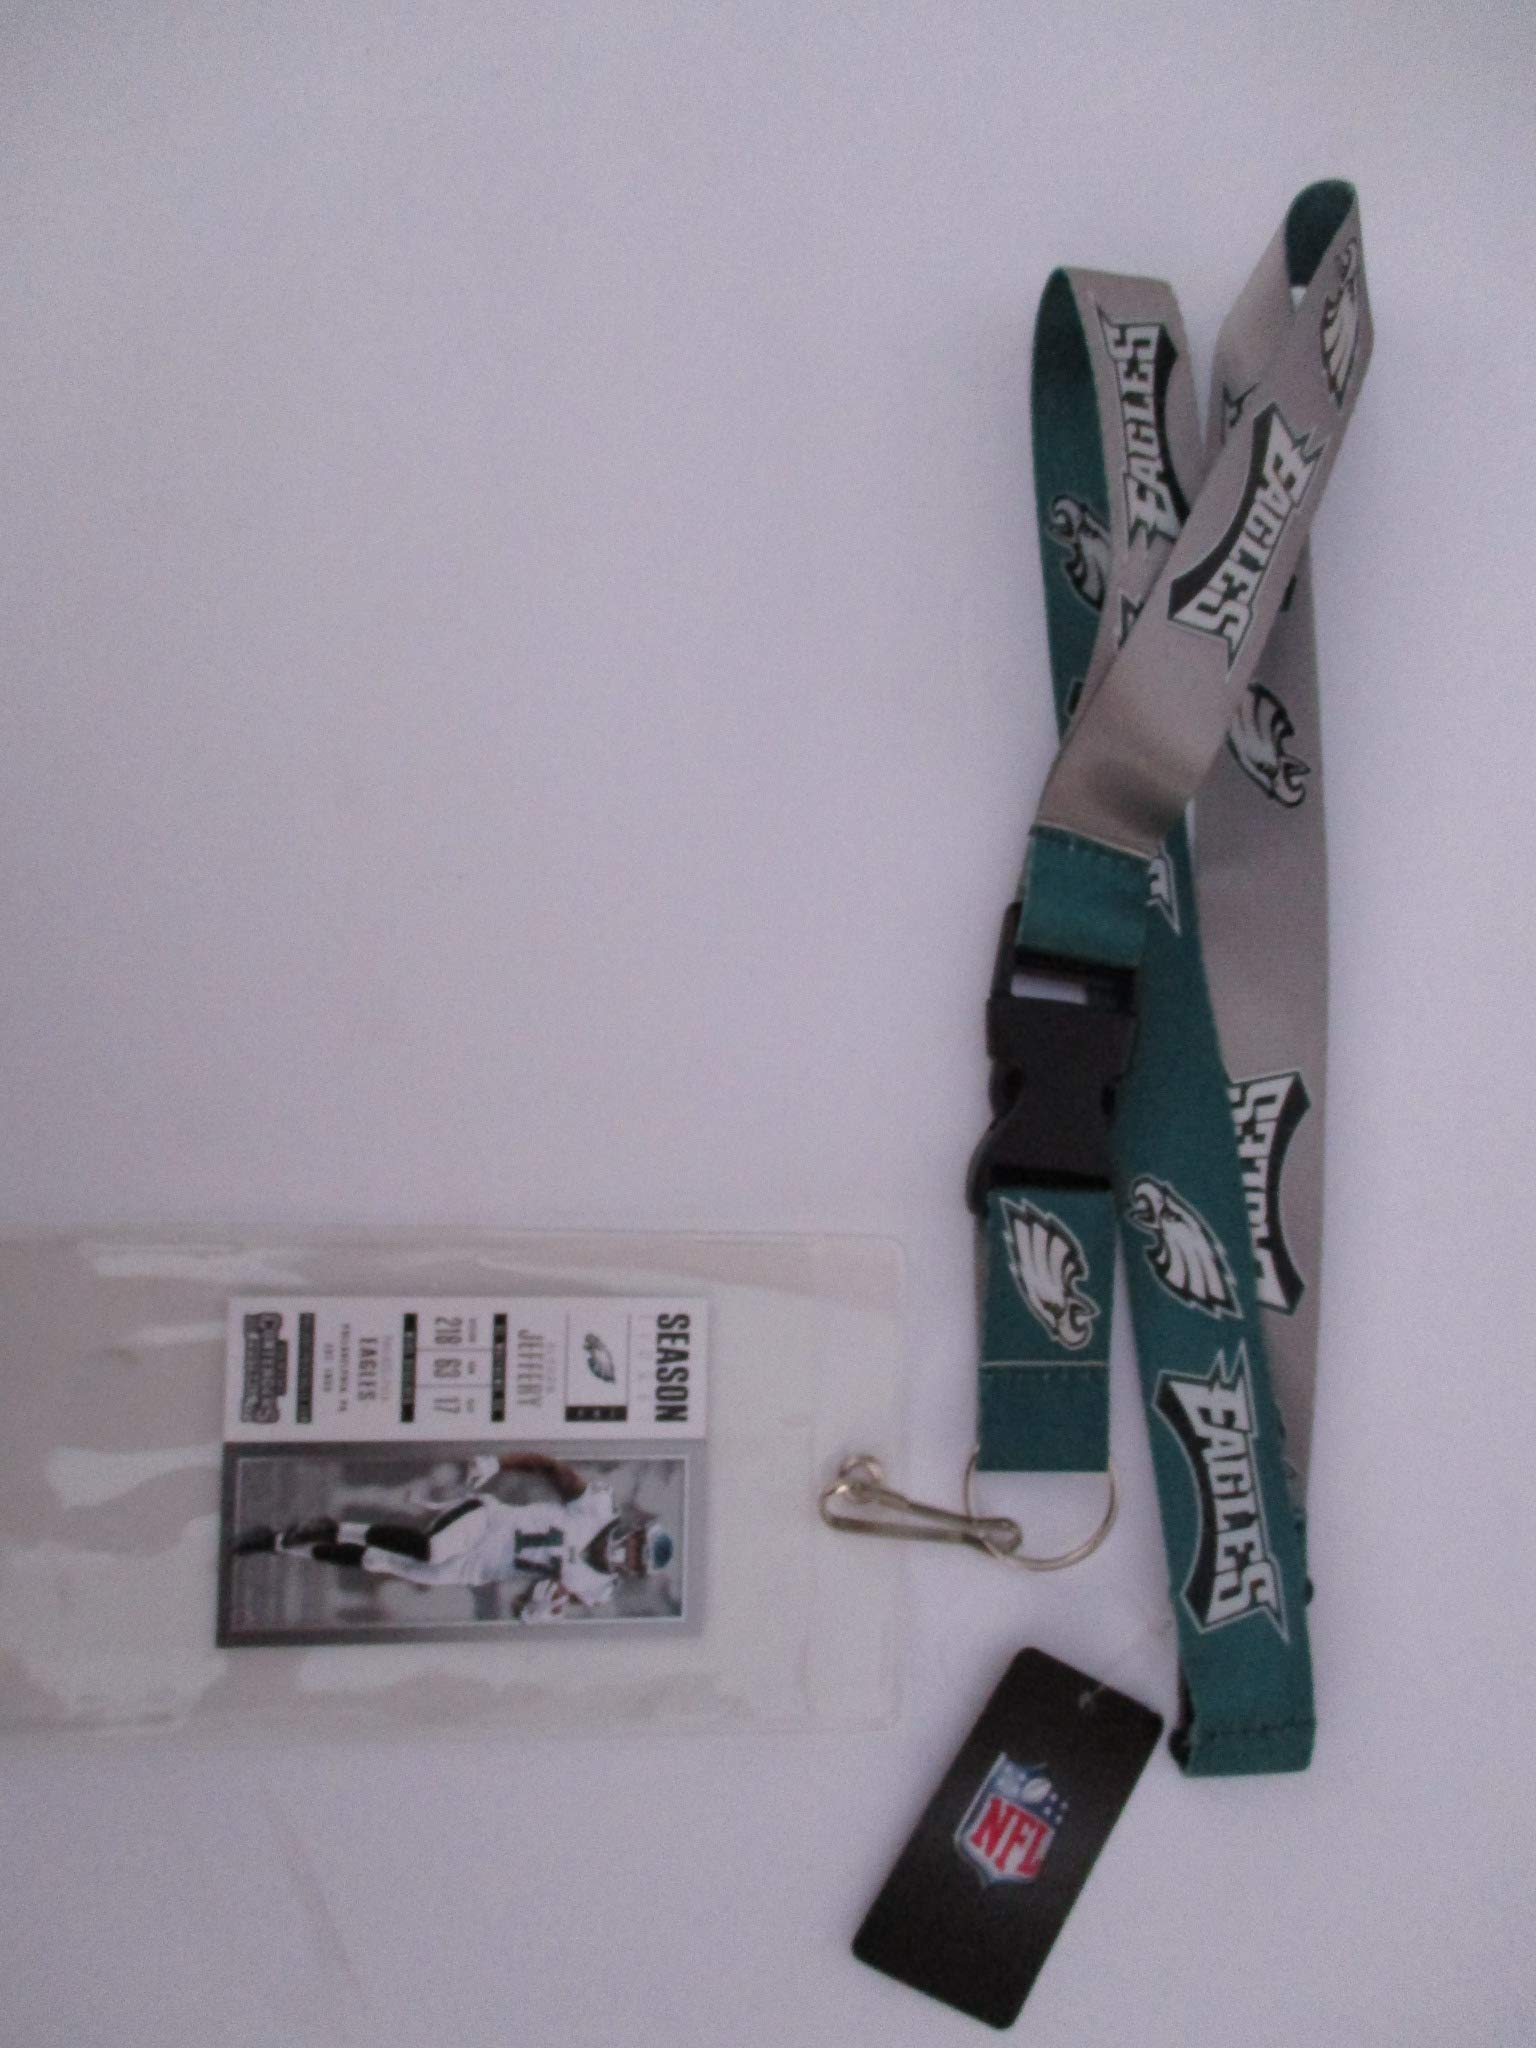 PHILADELPHIA EAGLES TWO TONE GREEN AND GREY LANYARD WITH TICKET HOLDER PLUS COLLECTIBLE PLAYER CARD